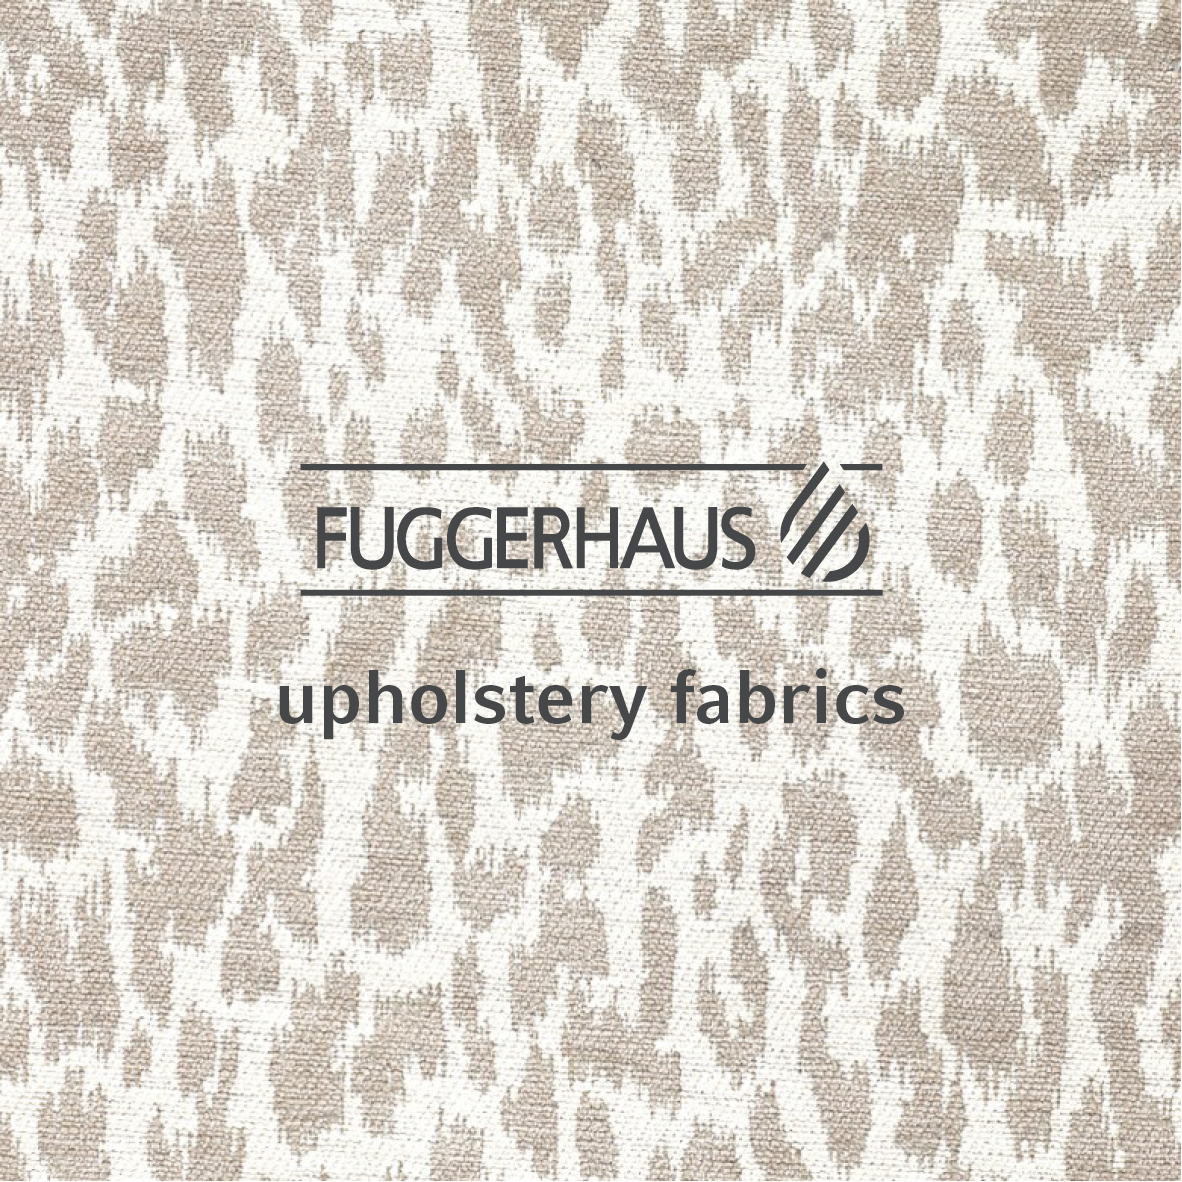 Fuggerhaus upholstery collections